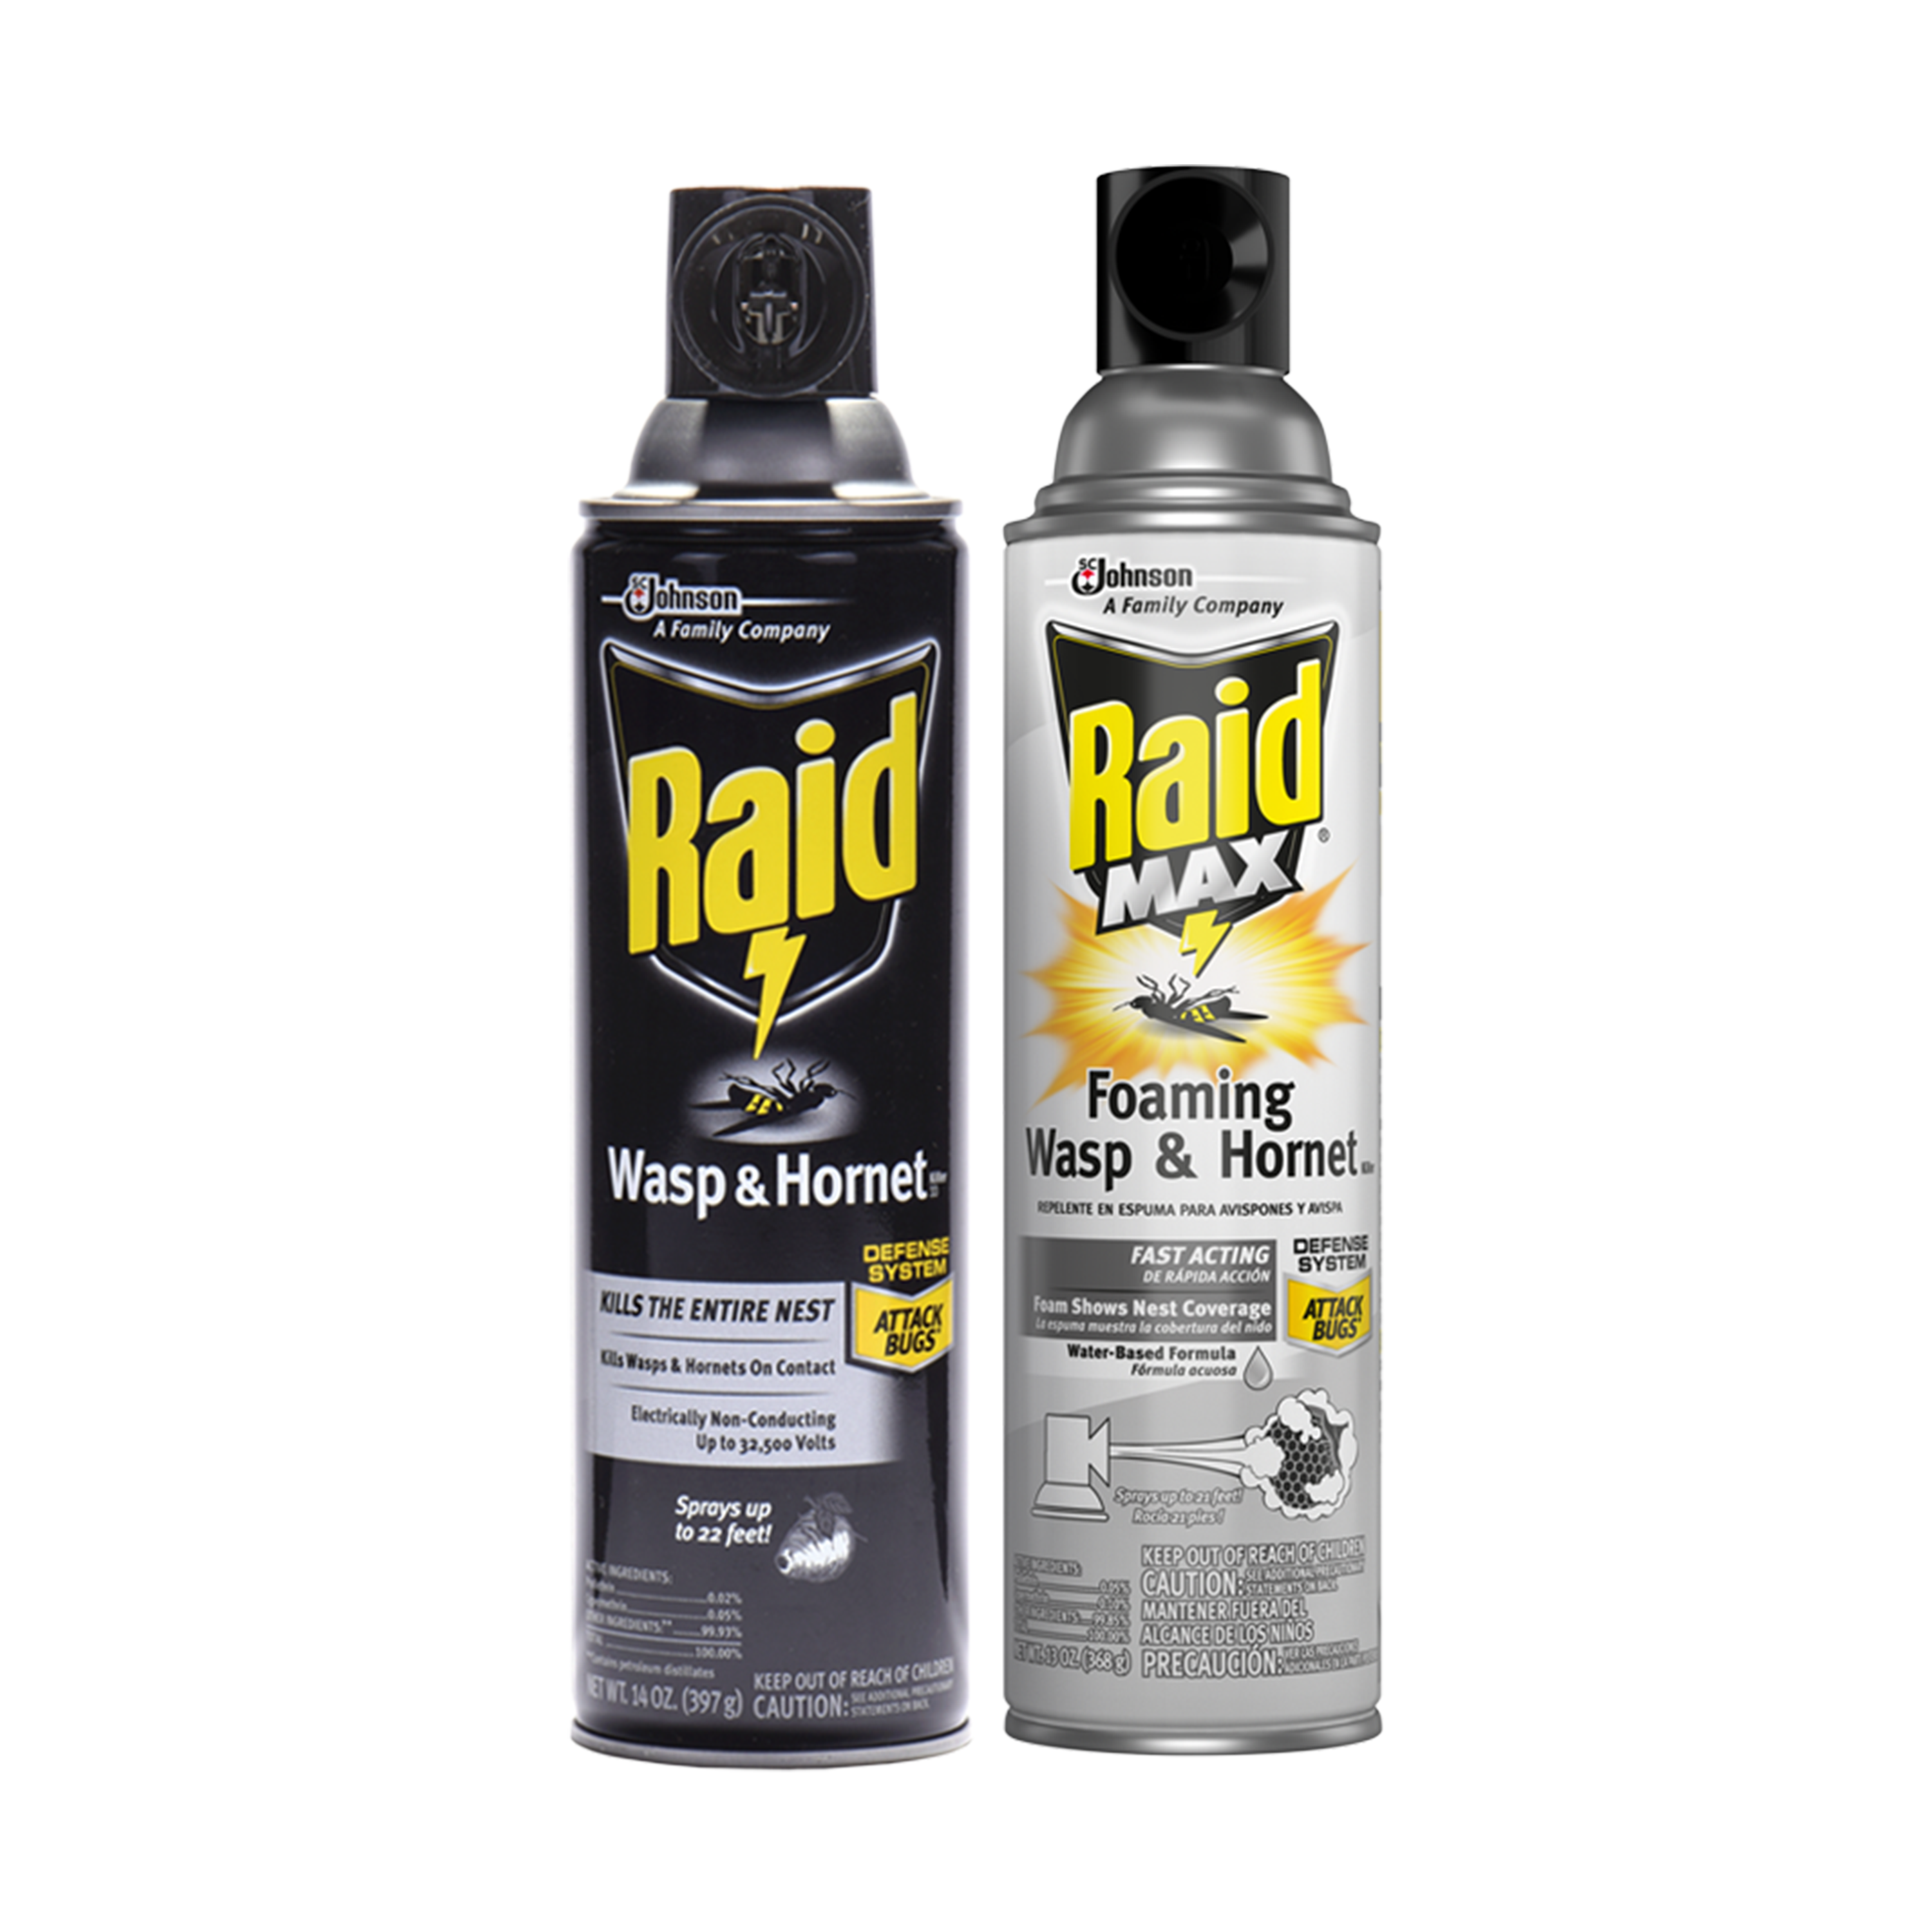 RAID® WASP & HORNET SOLUTIONS